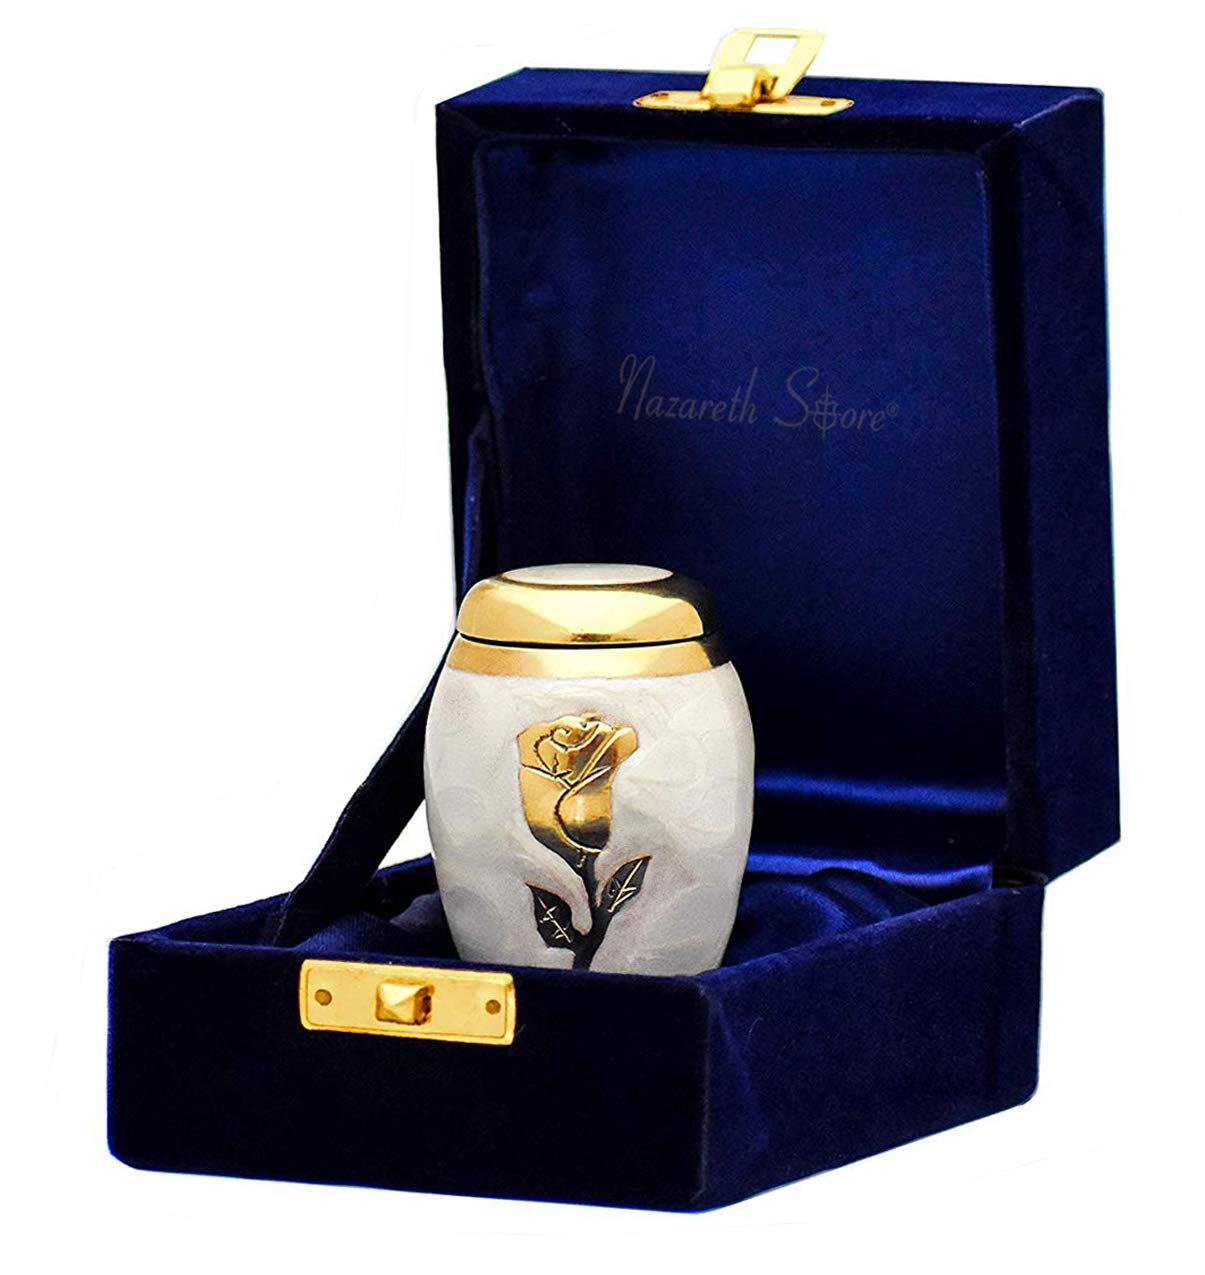 Hand Made 100/% Brass Miniature Memorial Funeral Urns for Sharing Ashes Nazareth Store Beautiful Small Keepsake Cremation Urn for Human Ashes Elite Pearl White and Gold Rose Flower with Velvet Bag